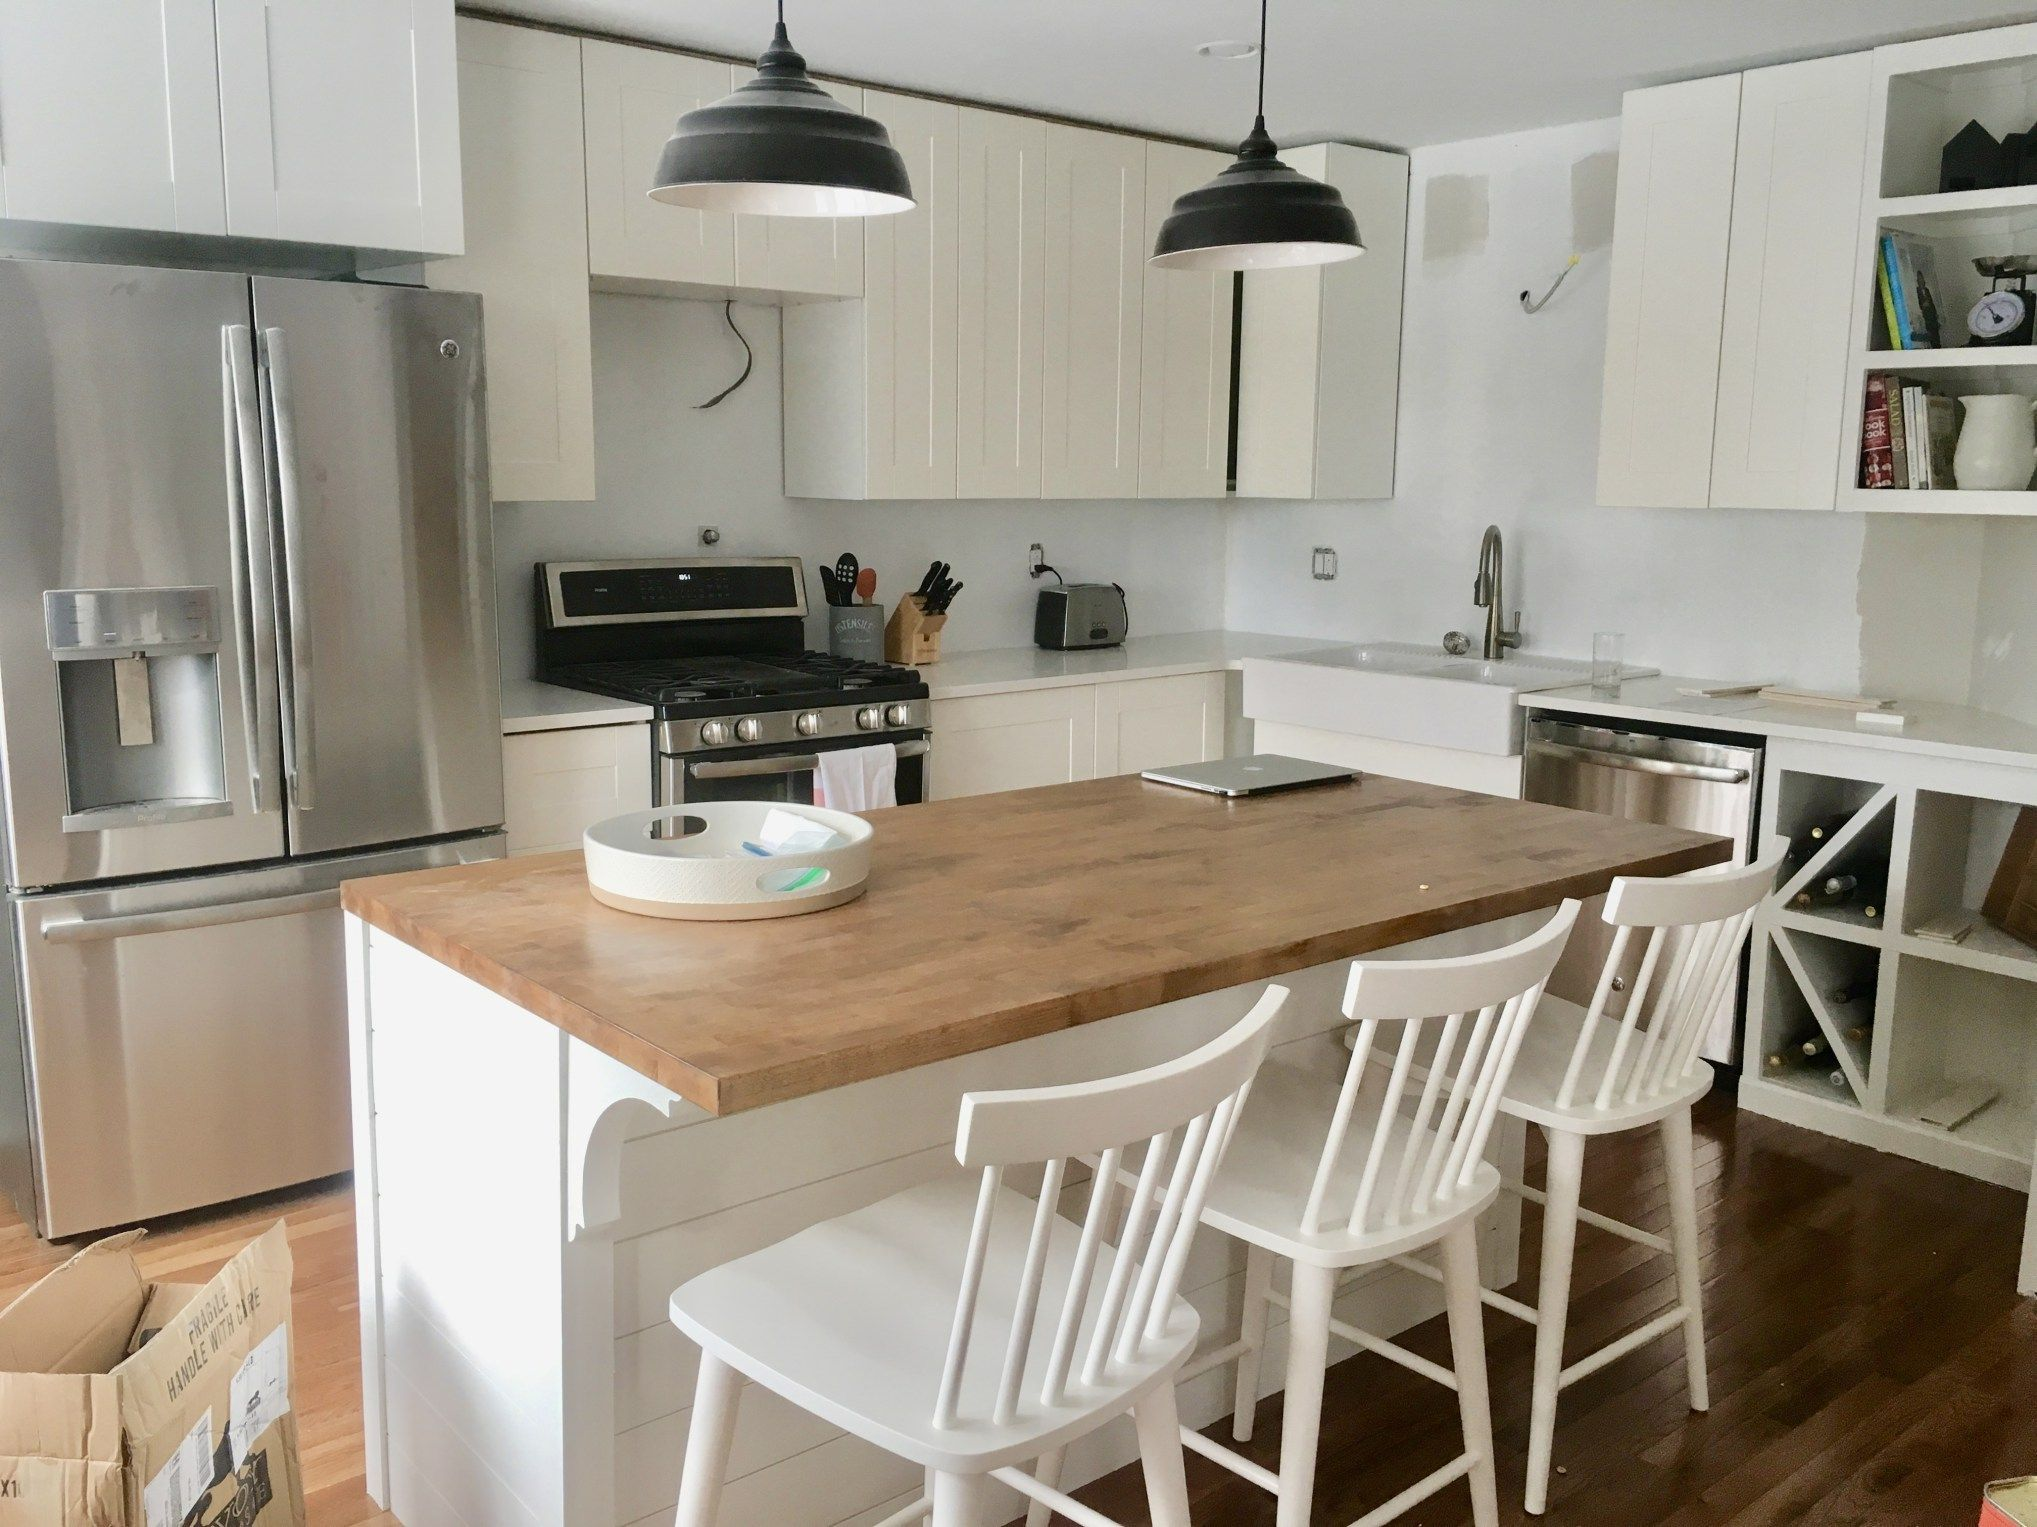 How To Build An Island Using Ikea Cabinets Ikea Kitchen Island Shiplap Kitchen Ikea Cabinets